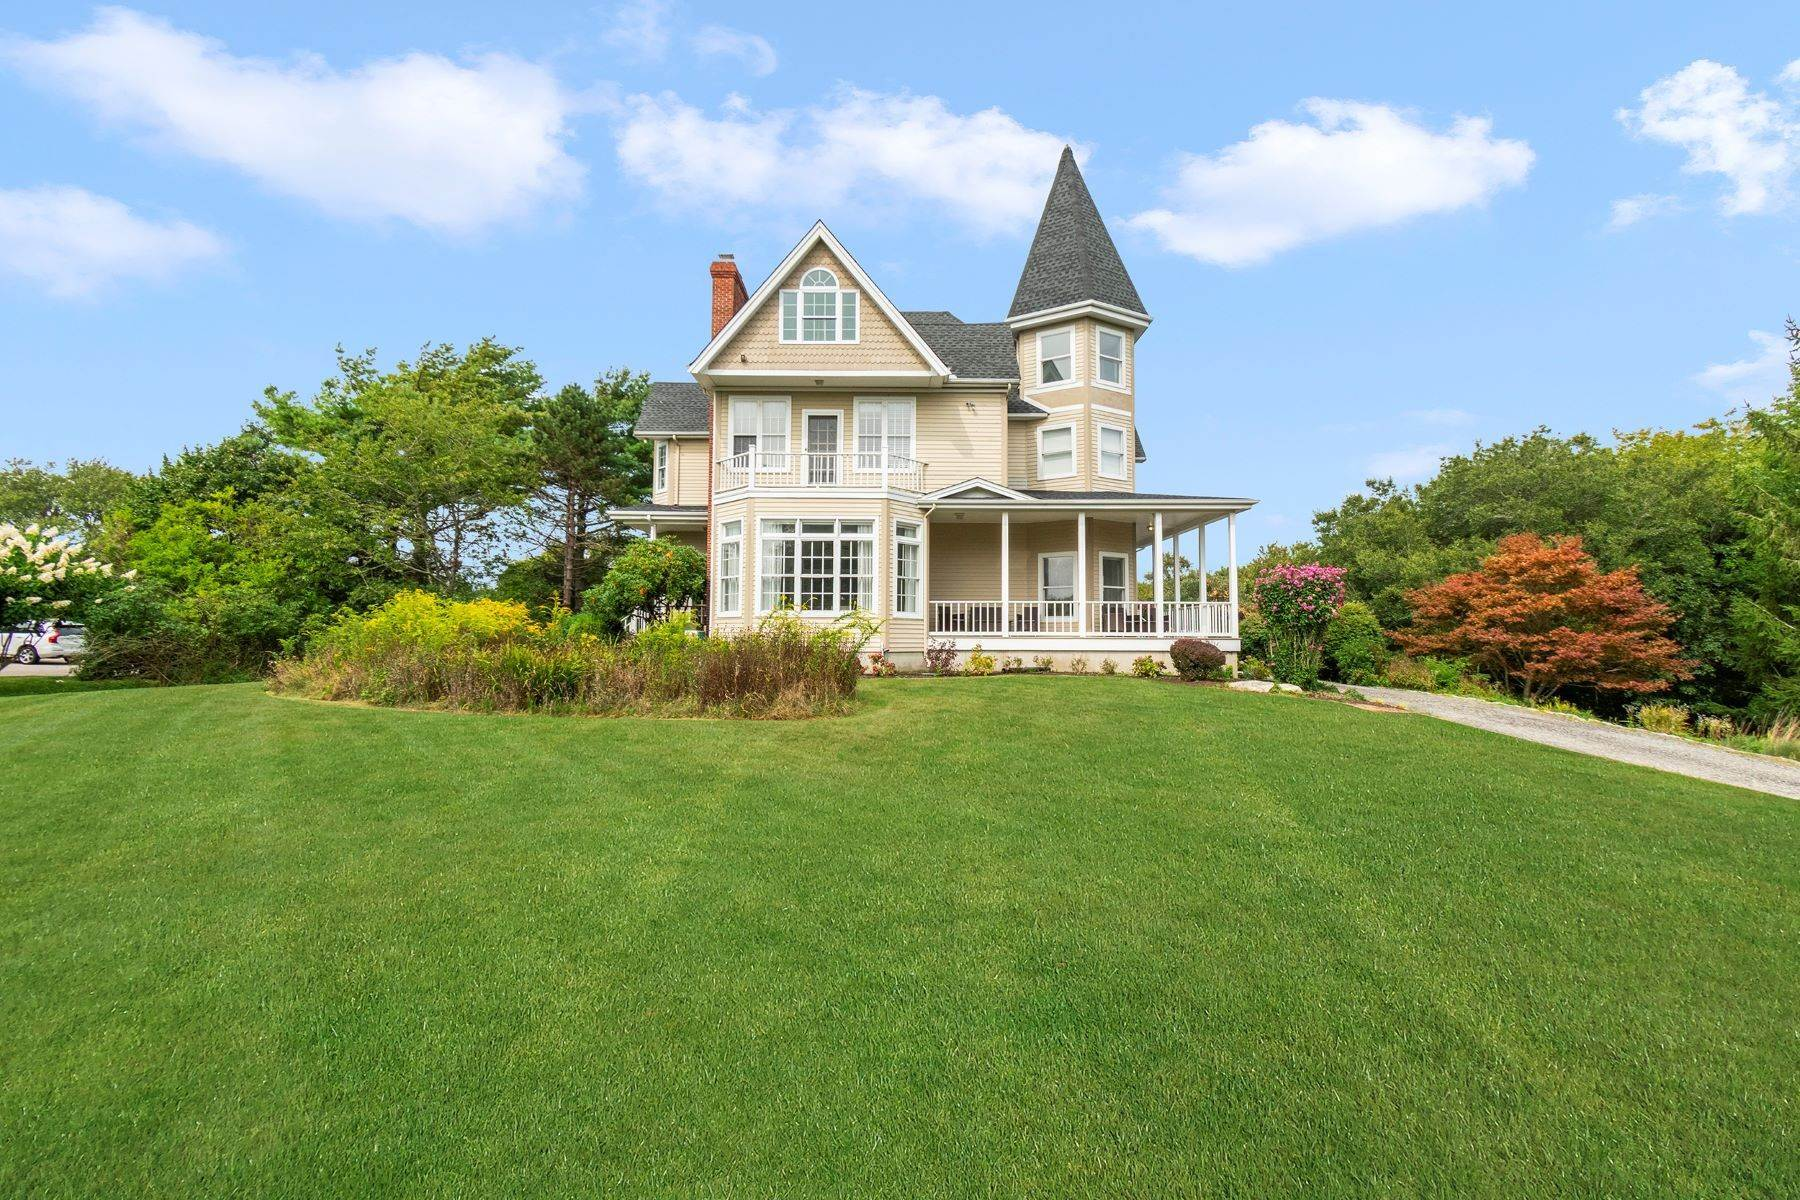 Other Residential Homes for Sale at 51 SUNSET BLVD Narragansett, Rhode Island 02882 United States